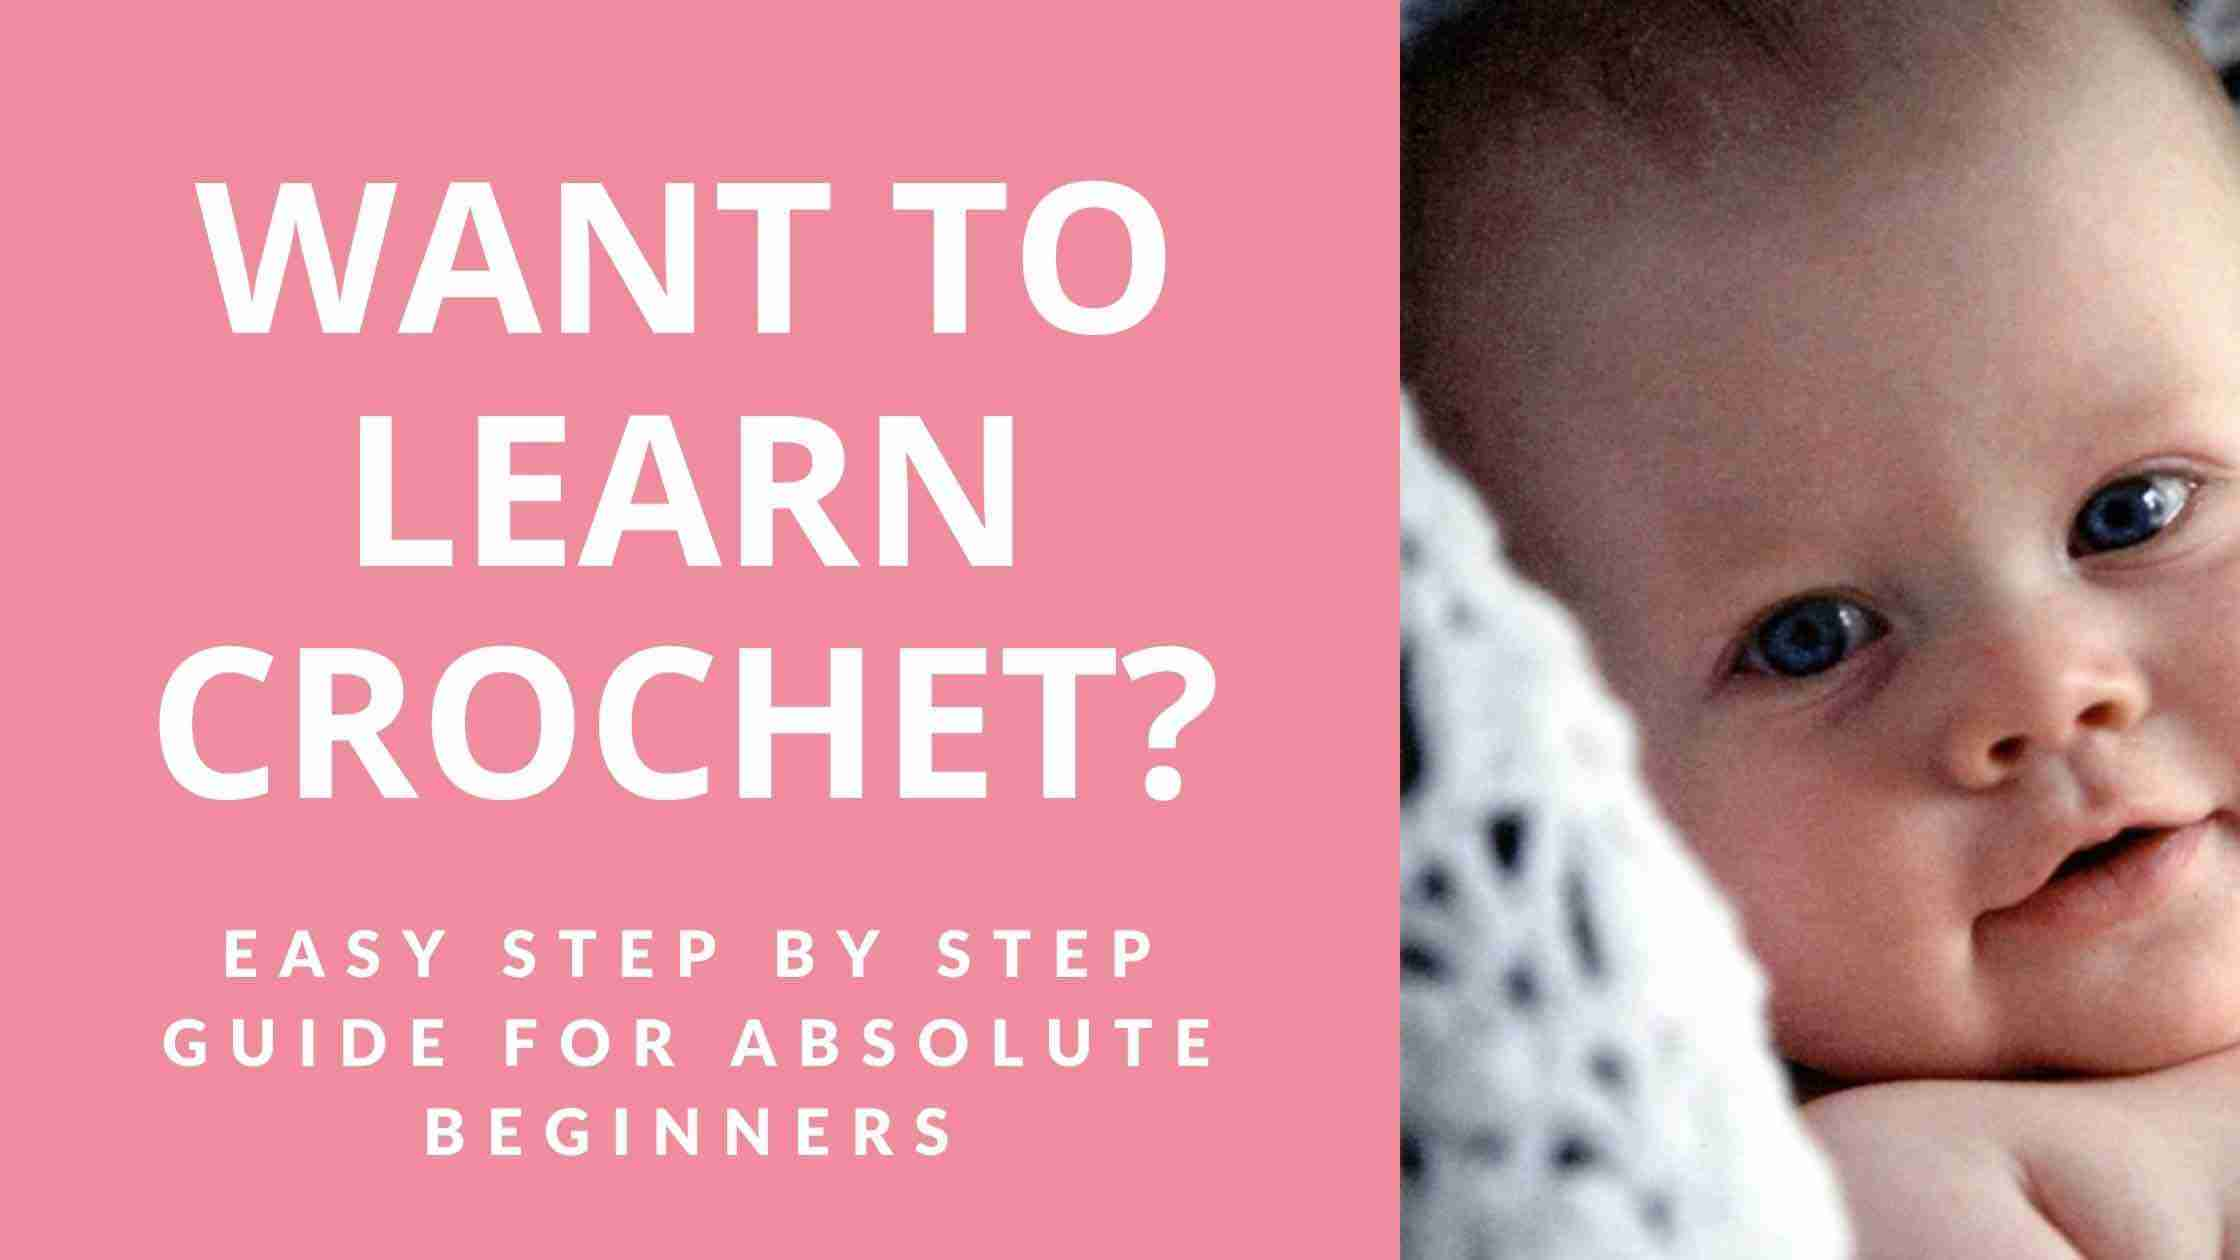 Easy Step By Step Guide for Absolute Beginners - Start Crochet